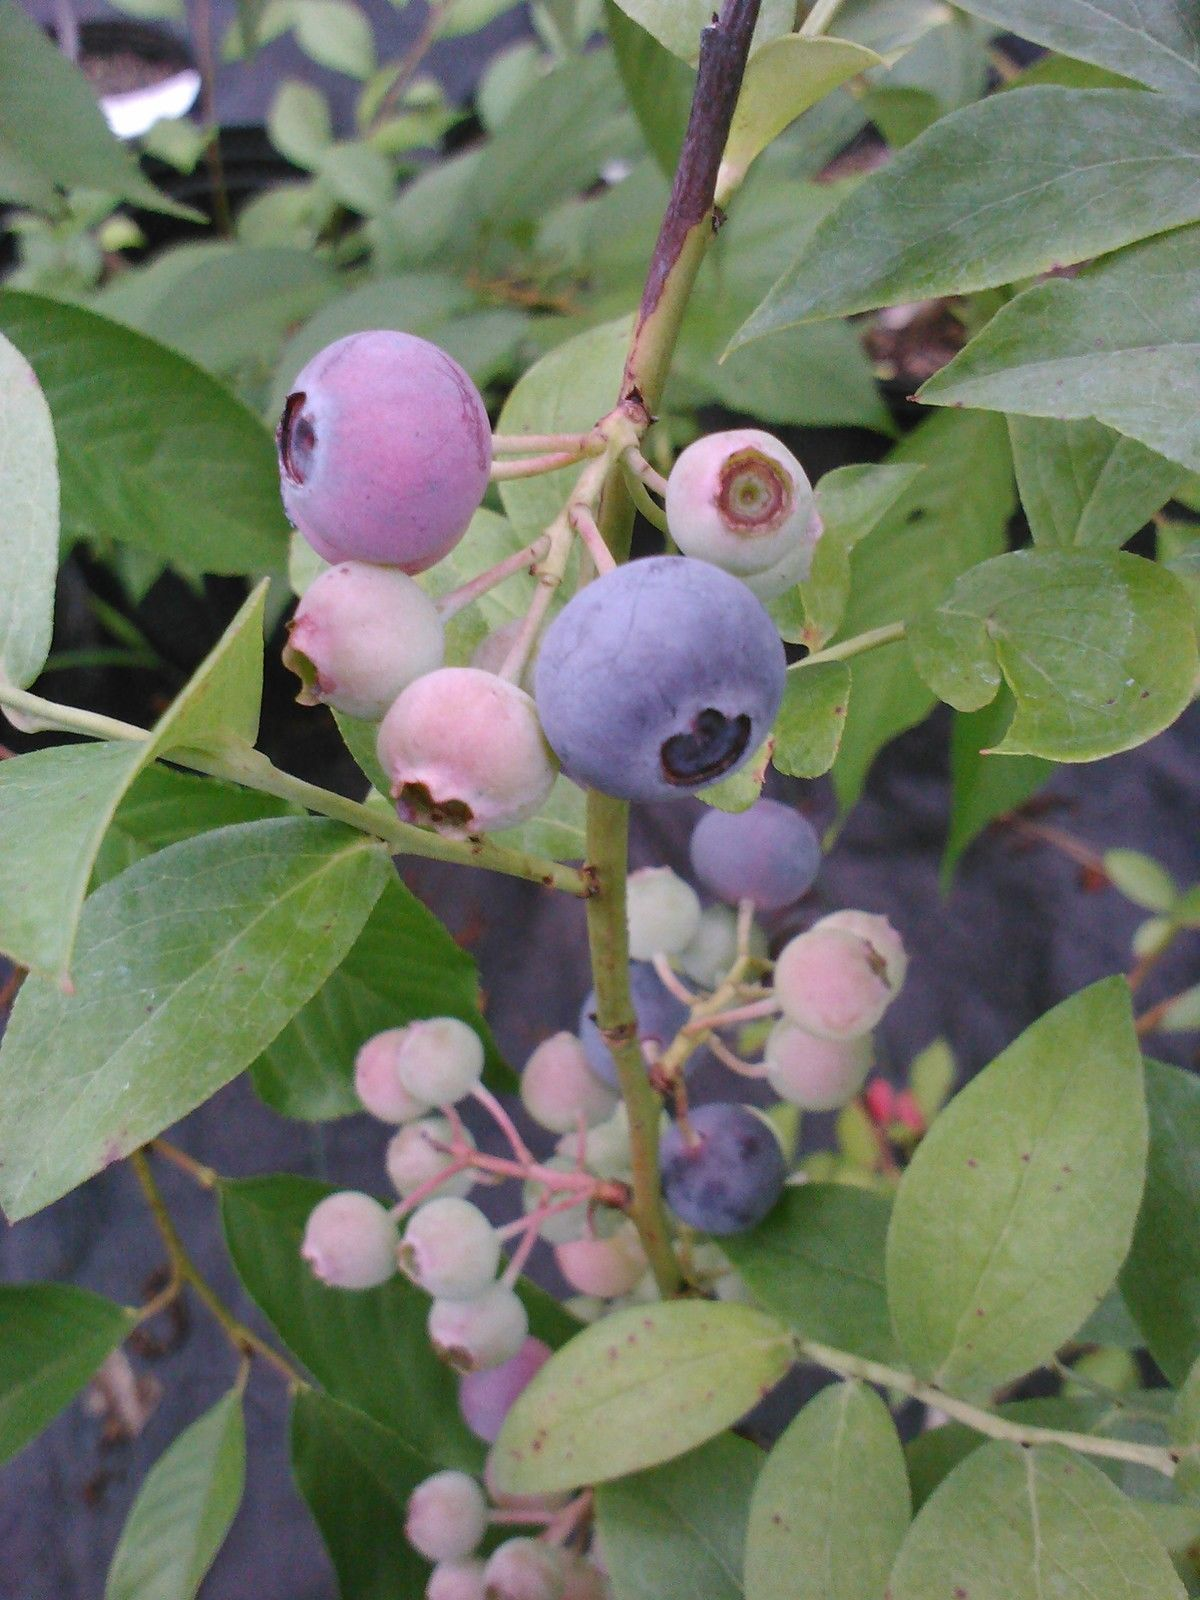 POWDERBLUE RABBITEYE Blueberry, the berries are pink before transitioning to their ripe blue color.